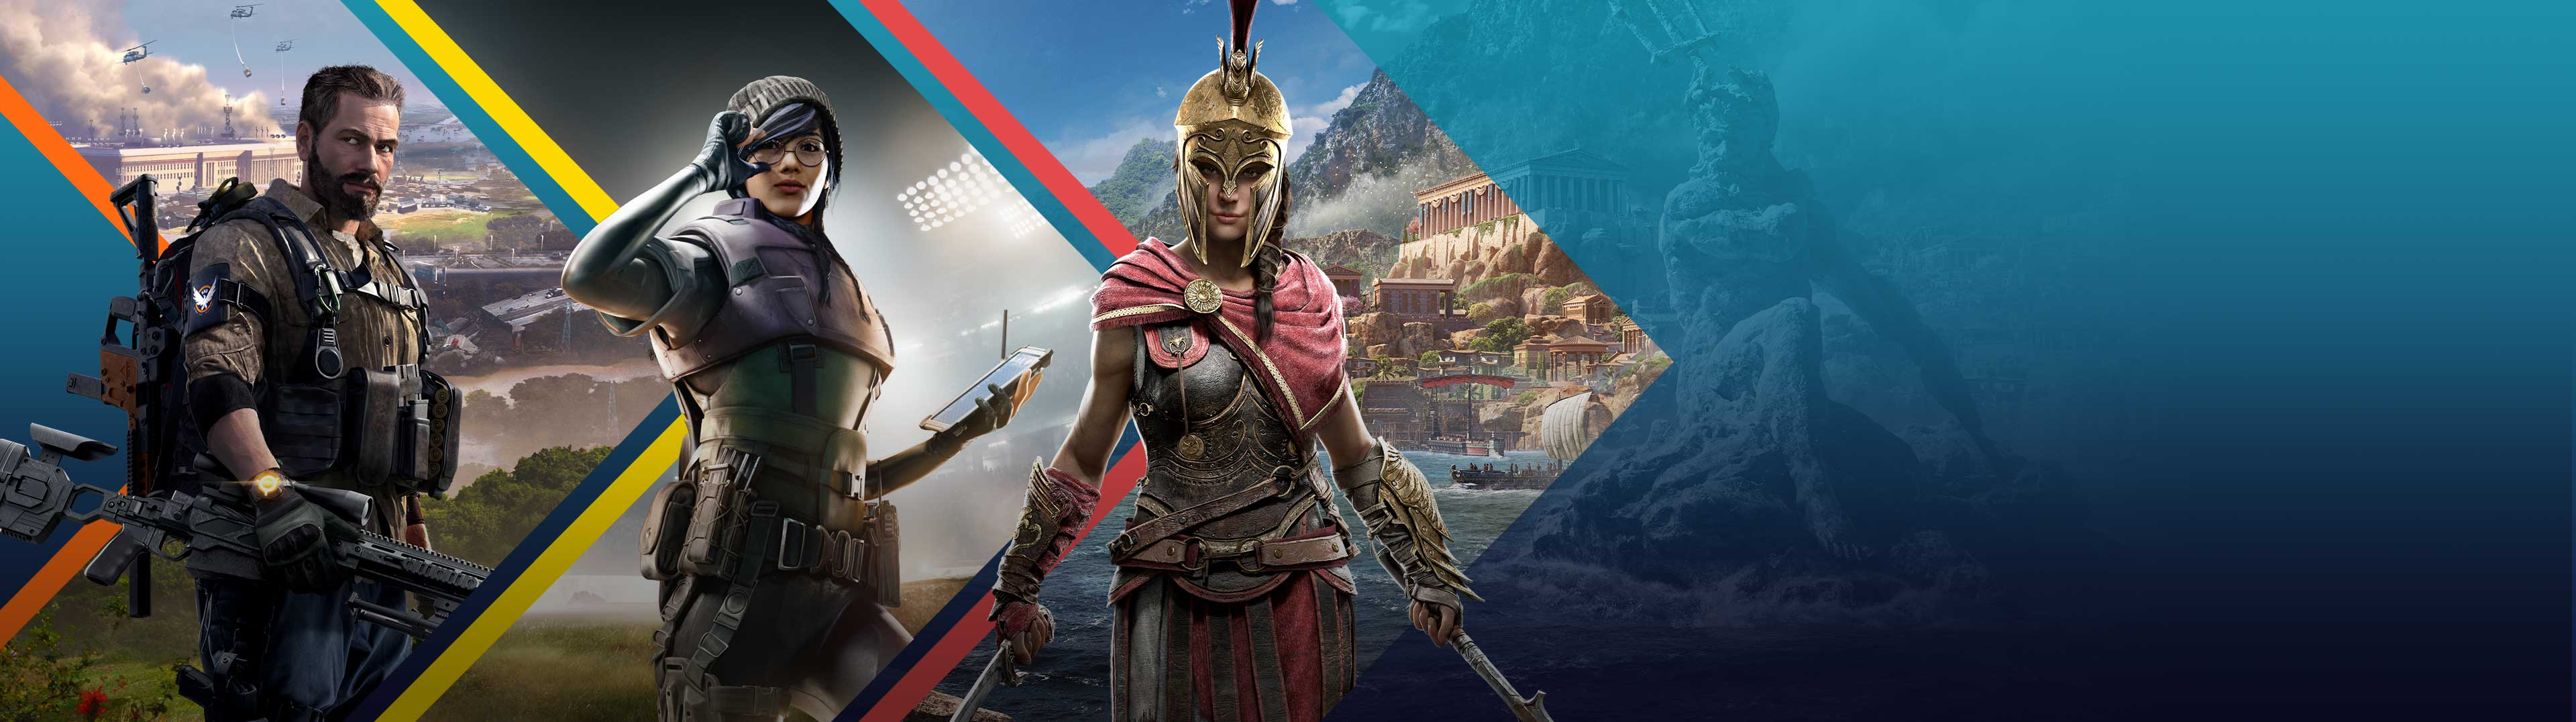 UBISOFT FORWARD SALE, UP TO 85% OFF